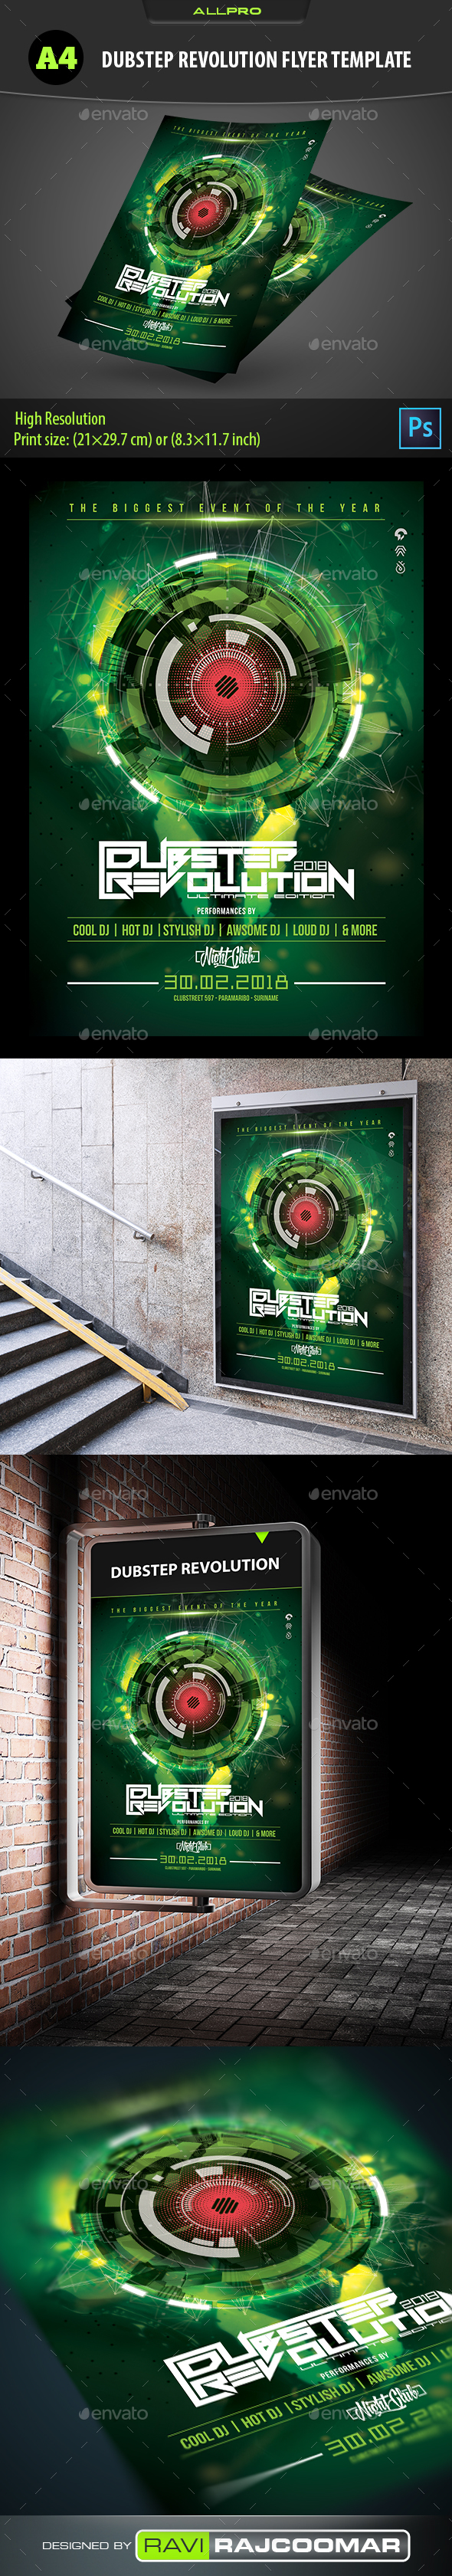 GraphicRiver Dubstep Revolution Flyer Template 21111614